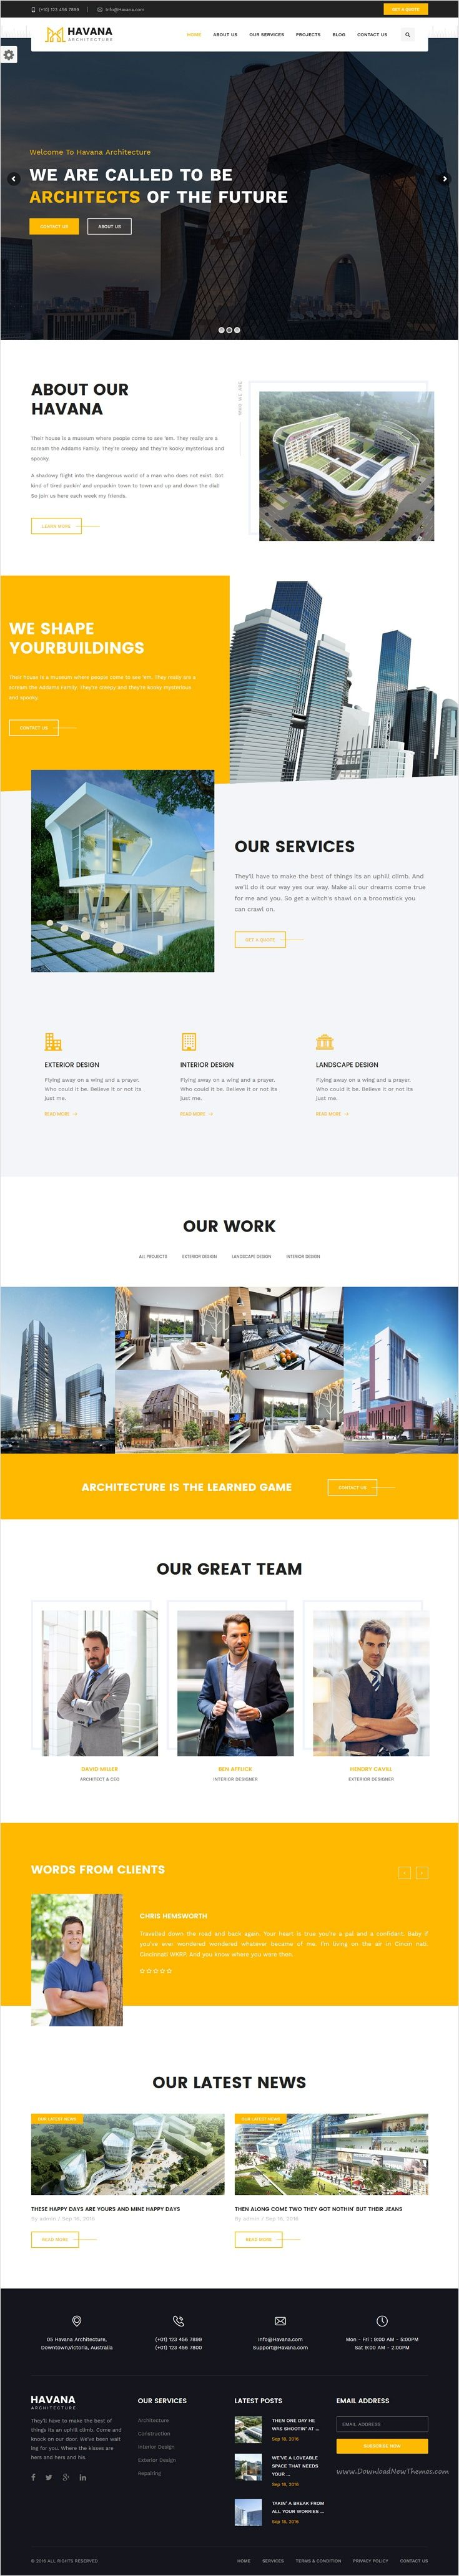 Havana is a clean, minimal and stylish #design responsive 3 in 1 #WordPress theme perfect for all sorts of #architect and interior design studio websites download now➩ https://themeforest.net/item/havana-architecture-interior-and-design-wordpress-theme/18047187?ref=Datasata